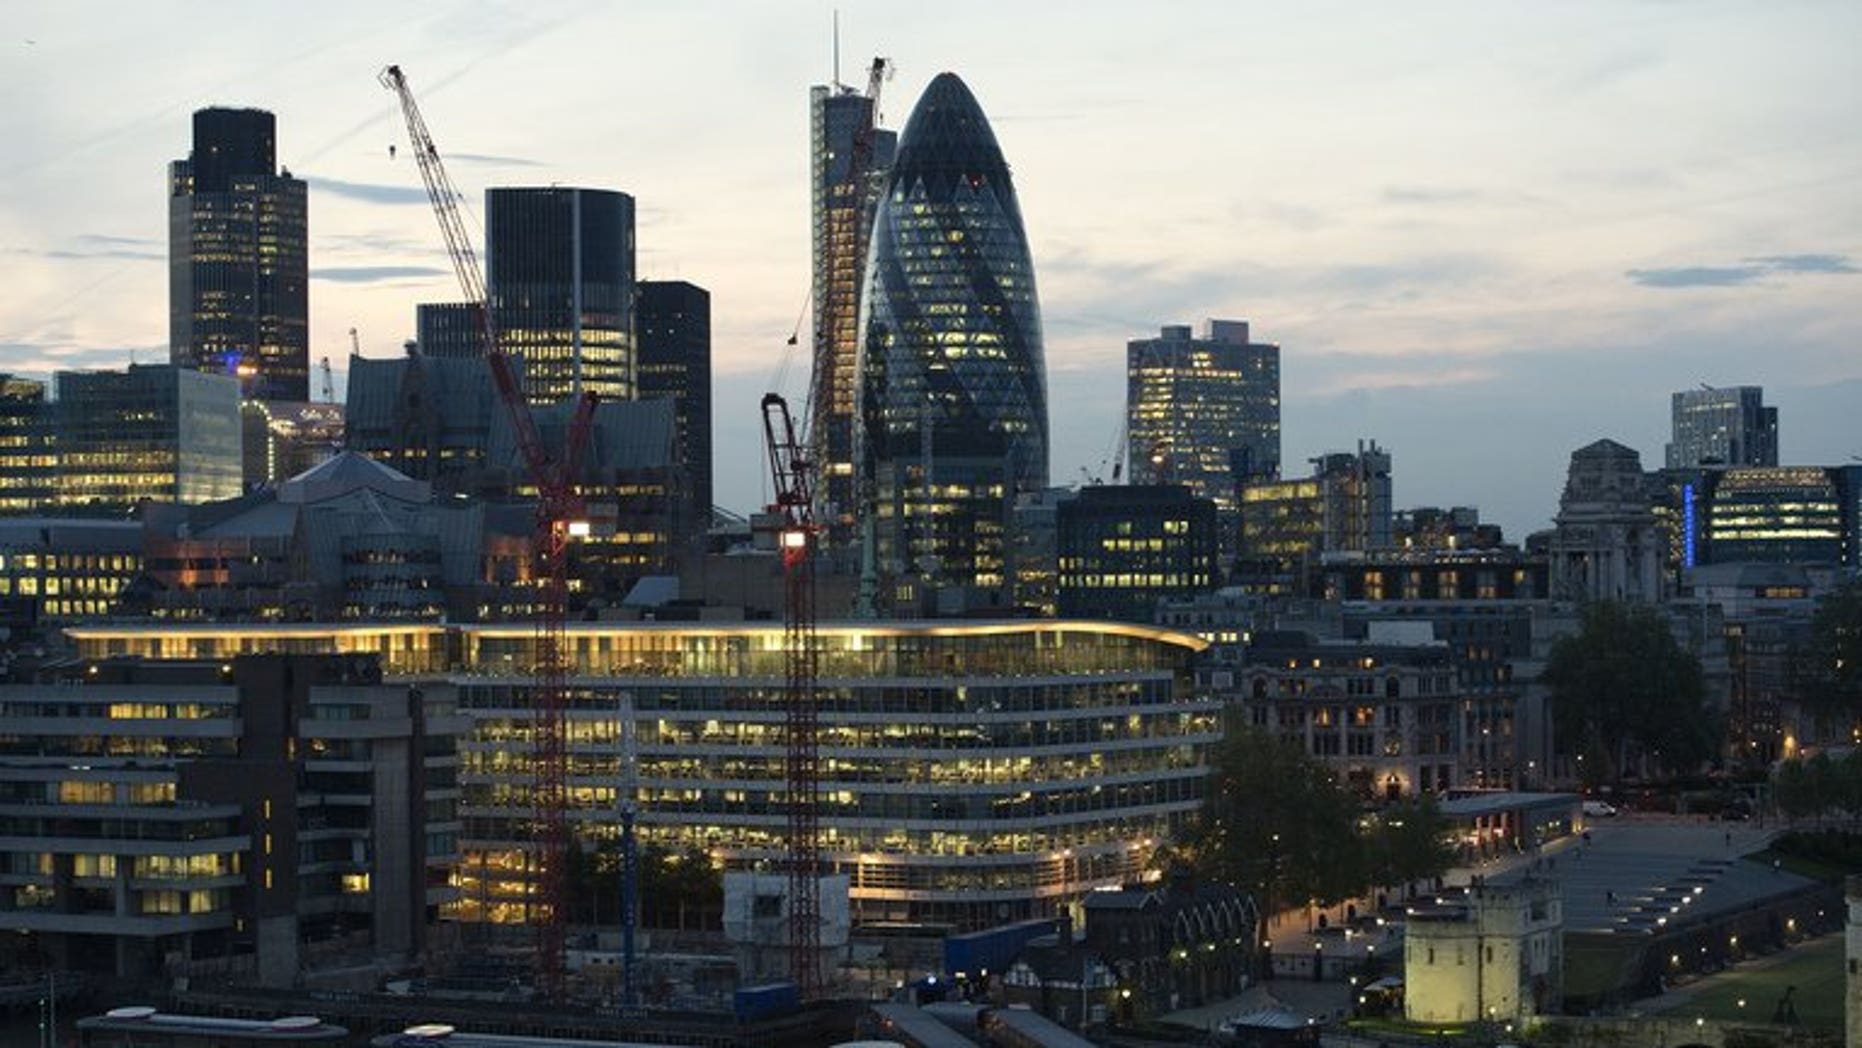 A view of the City of London on May 30, 2012. Britain's Serious Fraud Office said on Tuesday that former UBS trader Tom Hayes had become the first person to be charged in its probe into the Libor rate-rigging scandal that has rocked the banking sector.